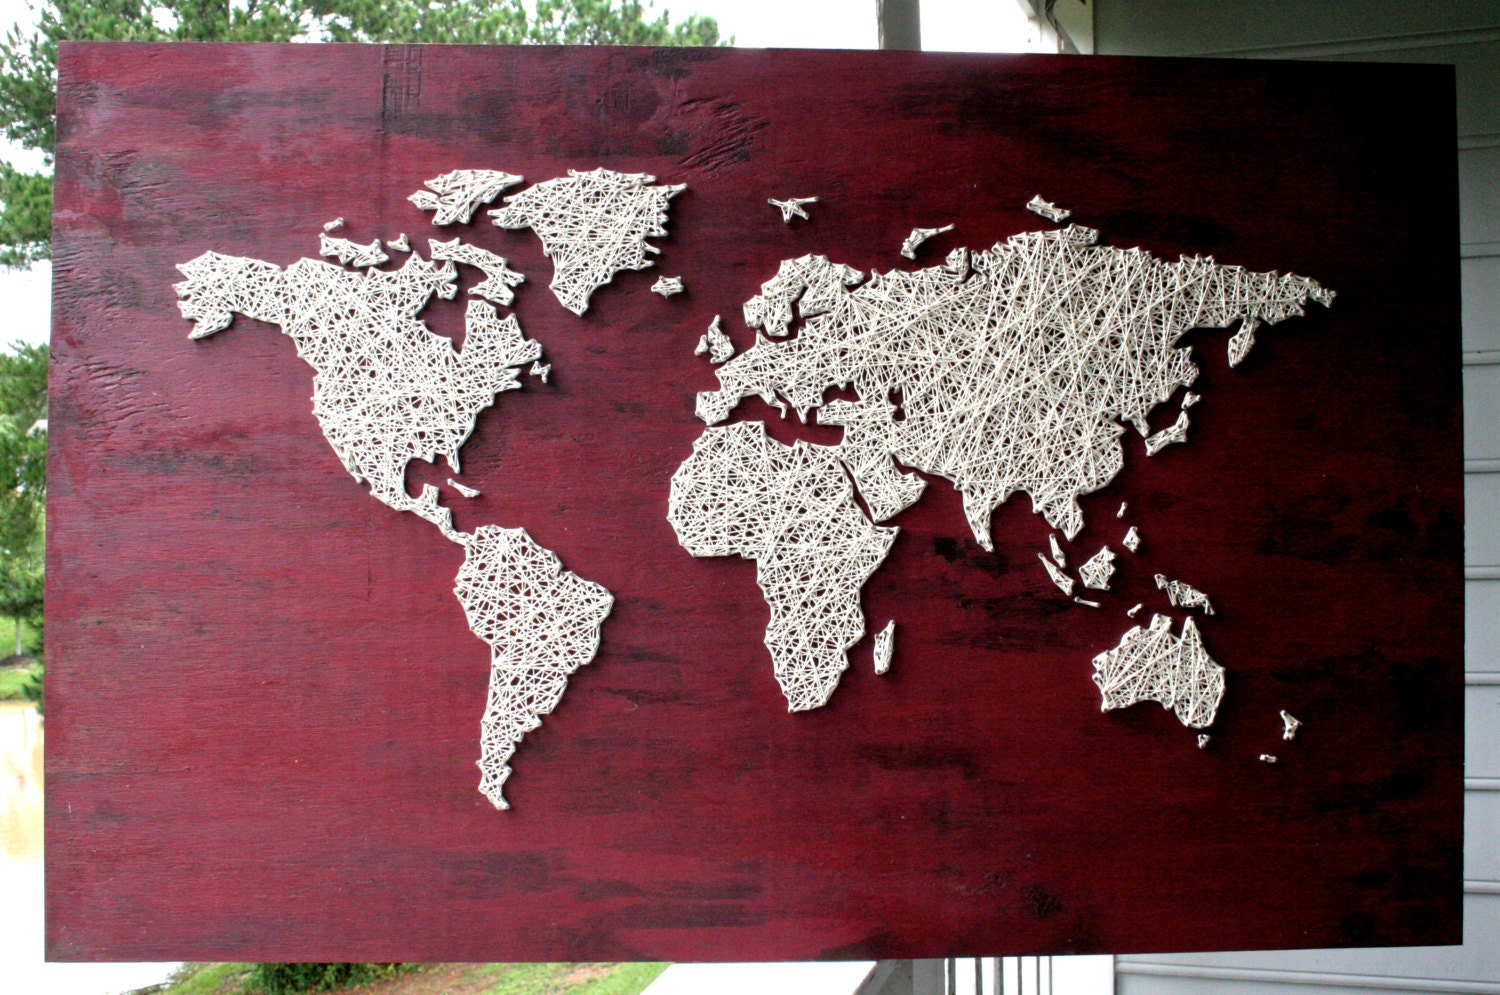 Uncategorized string map art englishsurvivalkit home design how to make a large scale world map string art hgtv pre drill holes sciox Gallery